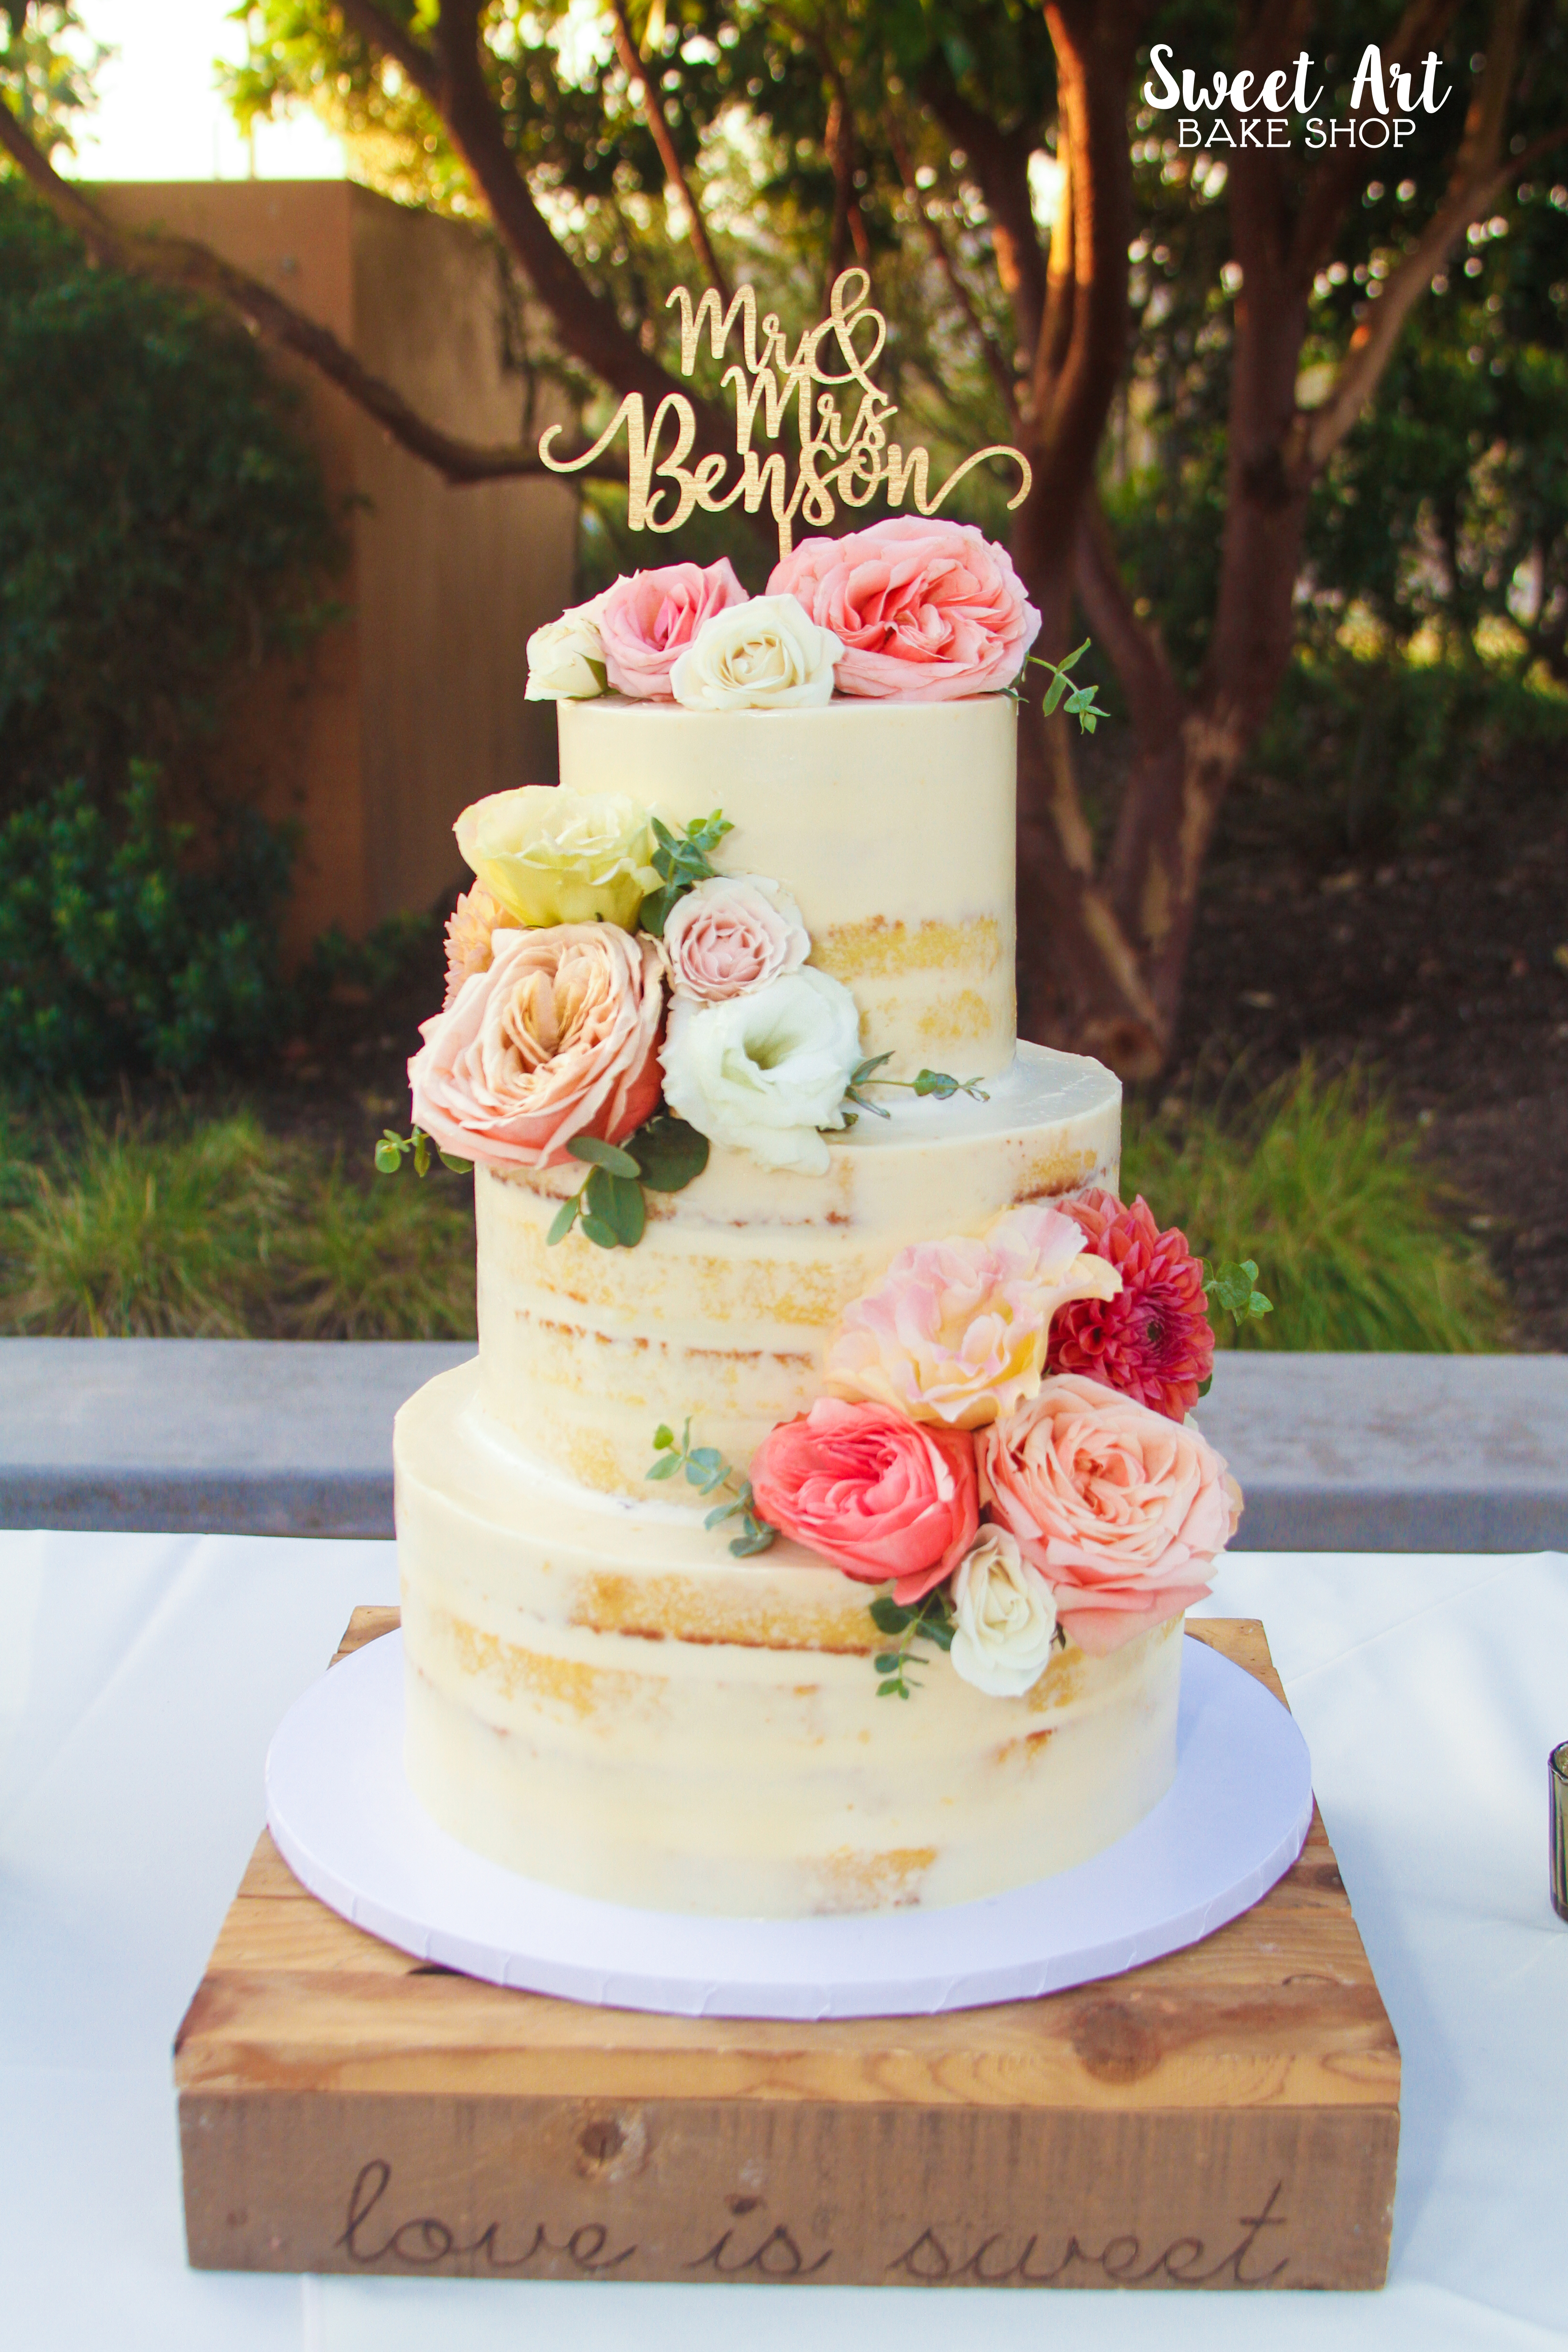 Stephanie & Ray's Naked Cake